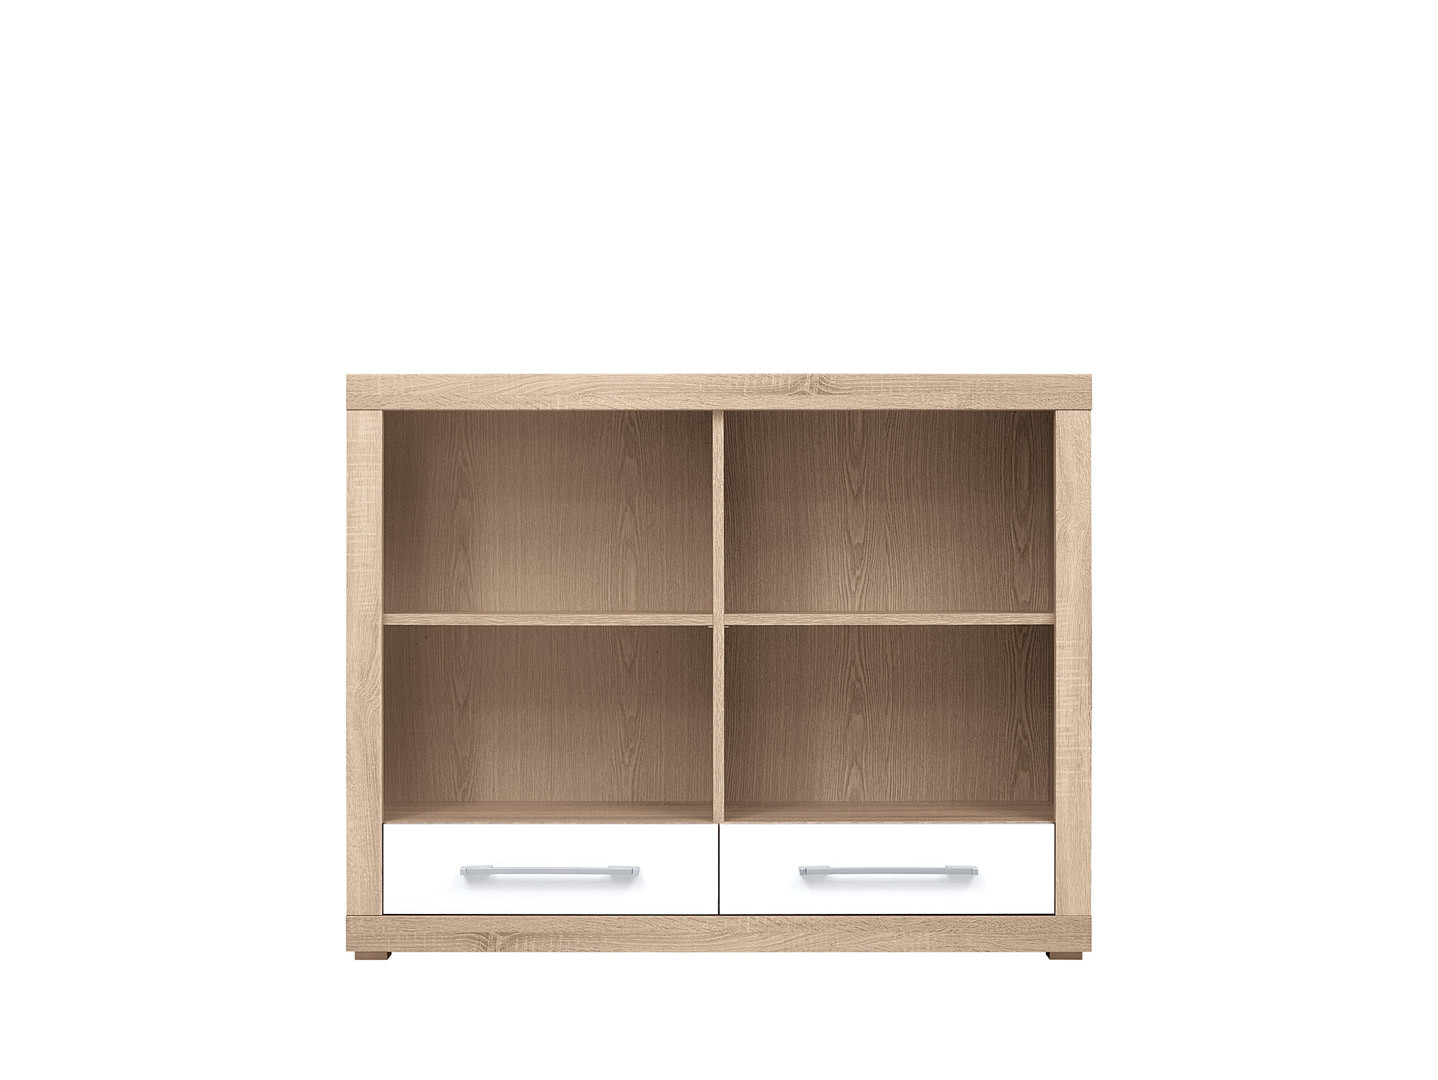 Bookshelf Bigi 124cm x 98cm x 35,5cm – furniture store BRW